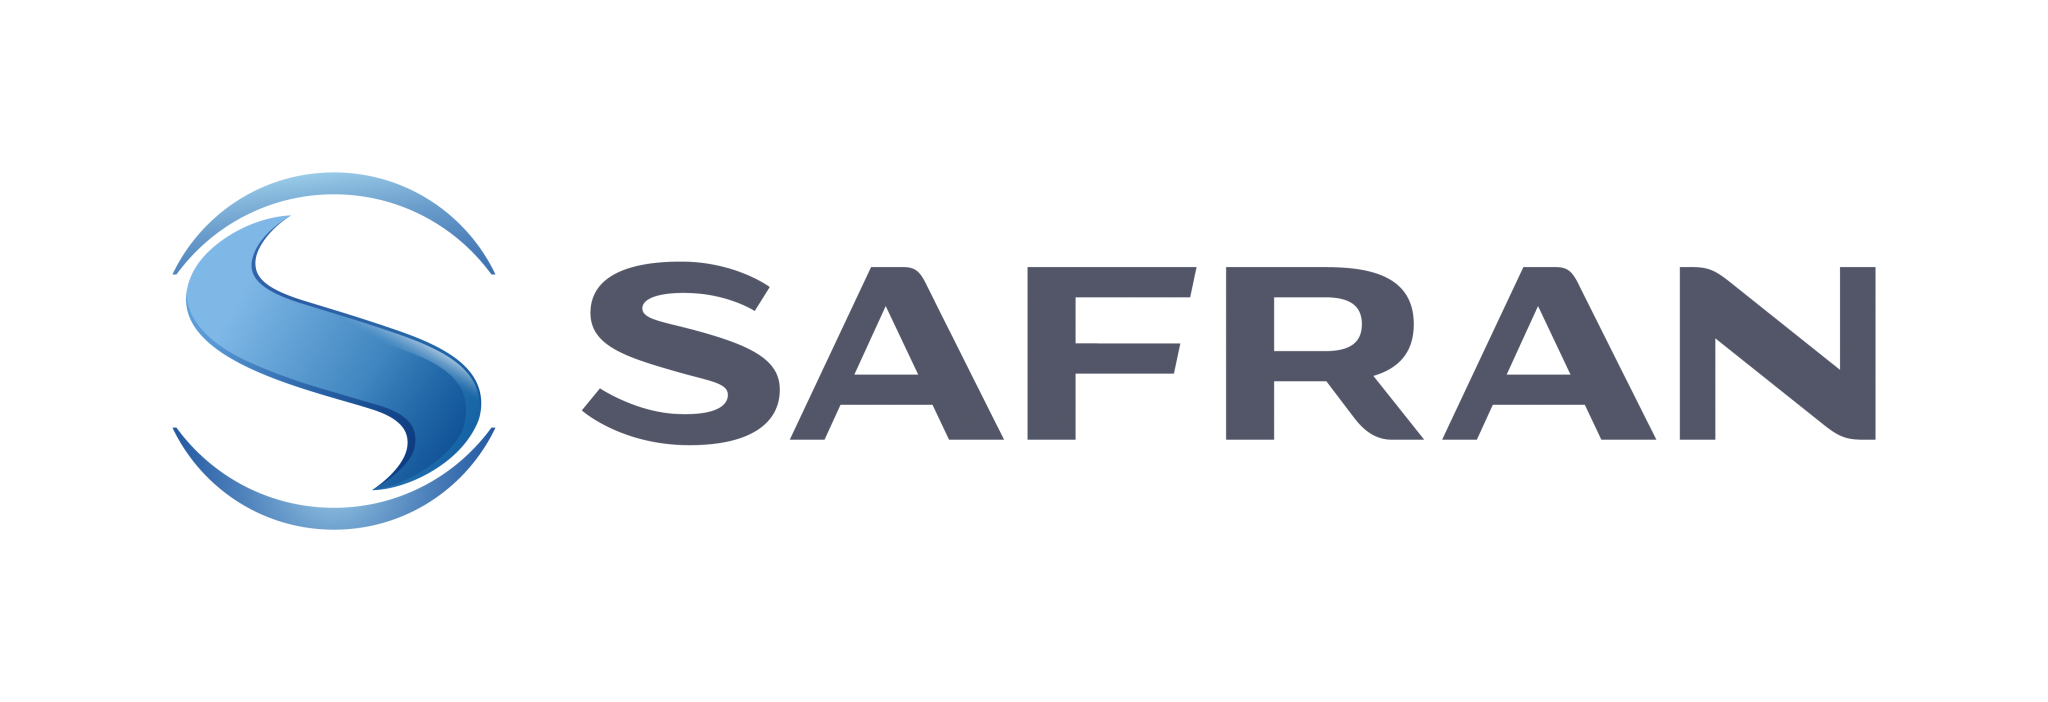 logo Safran Group